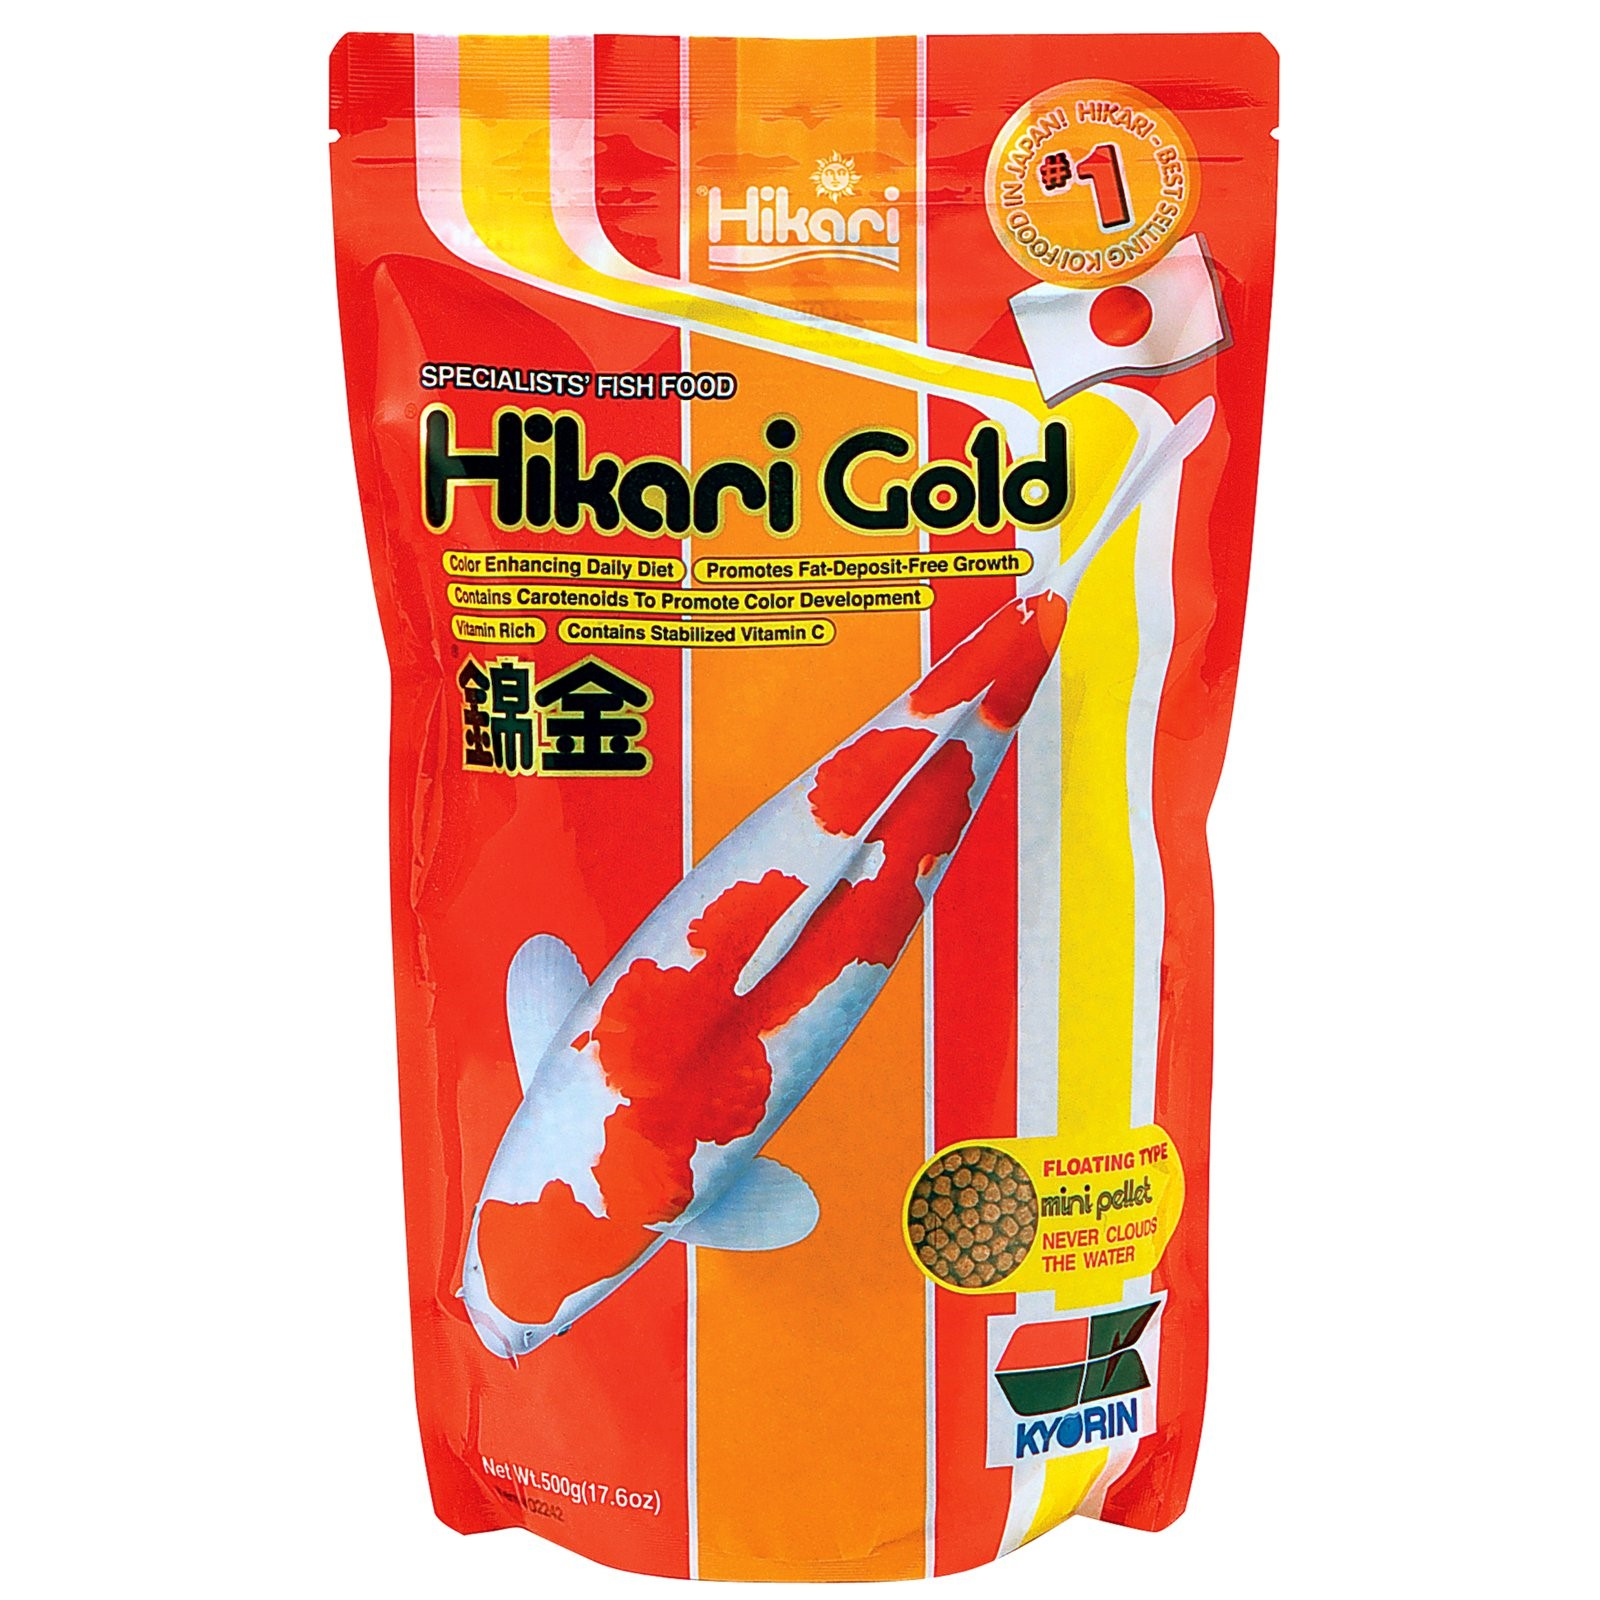 Hikari Gold Koi Medium Pellet Fish Food, 17.6 Oz